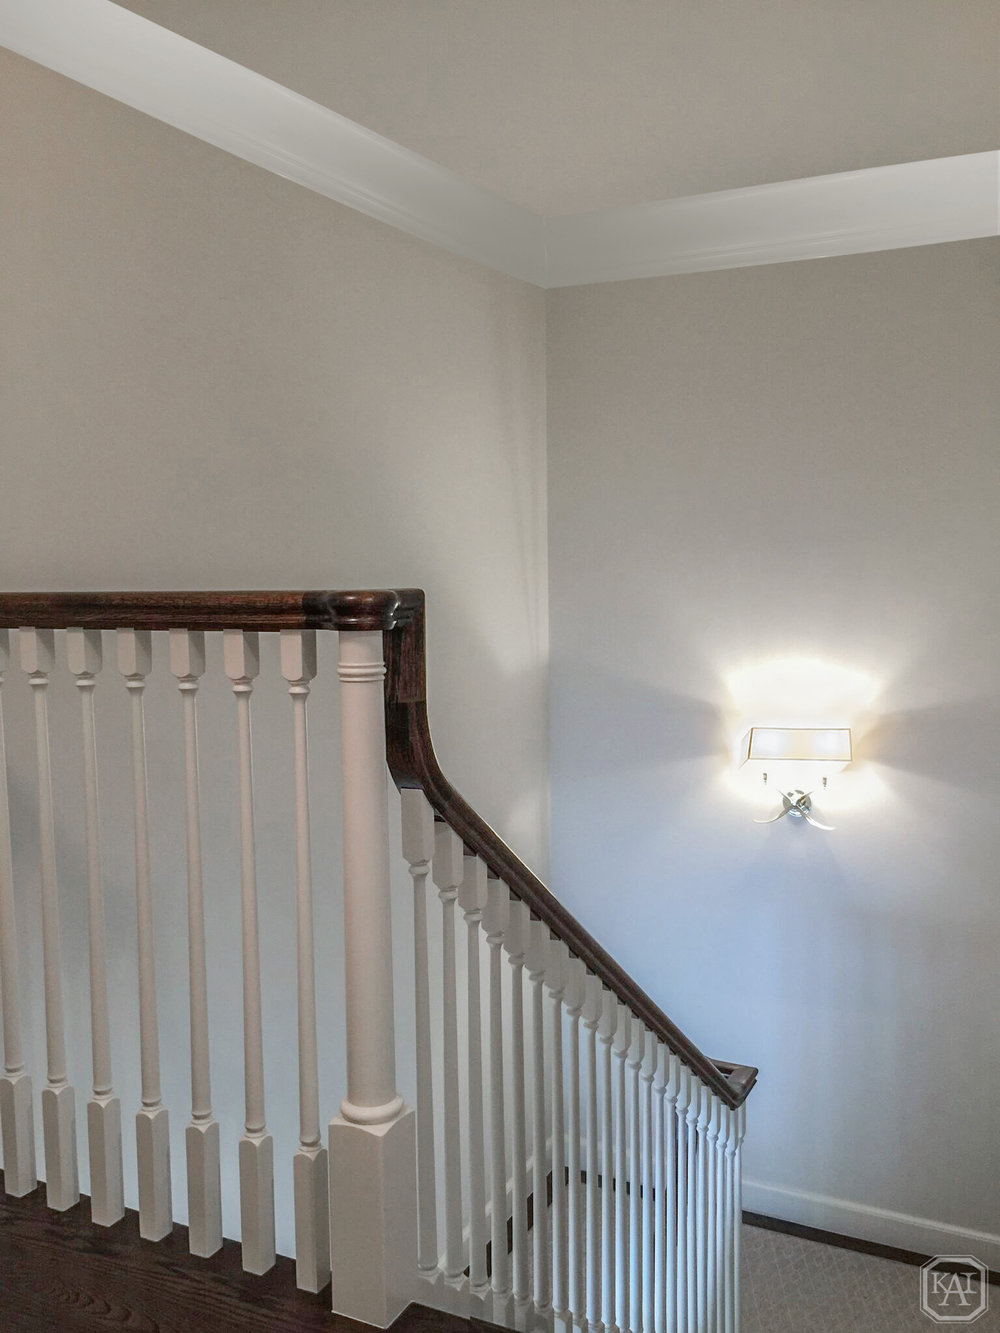 ZITELLA HALLWAY IN BACKSTAIRWAY WITH SCONCE LIGHT ON AND BALLUSTRADE_EDIT 1.jpg